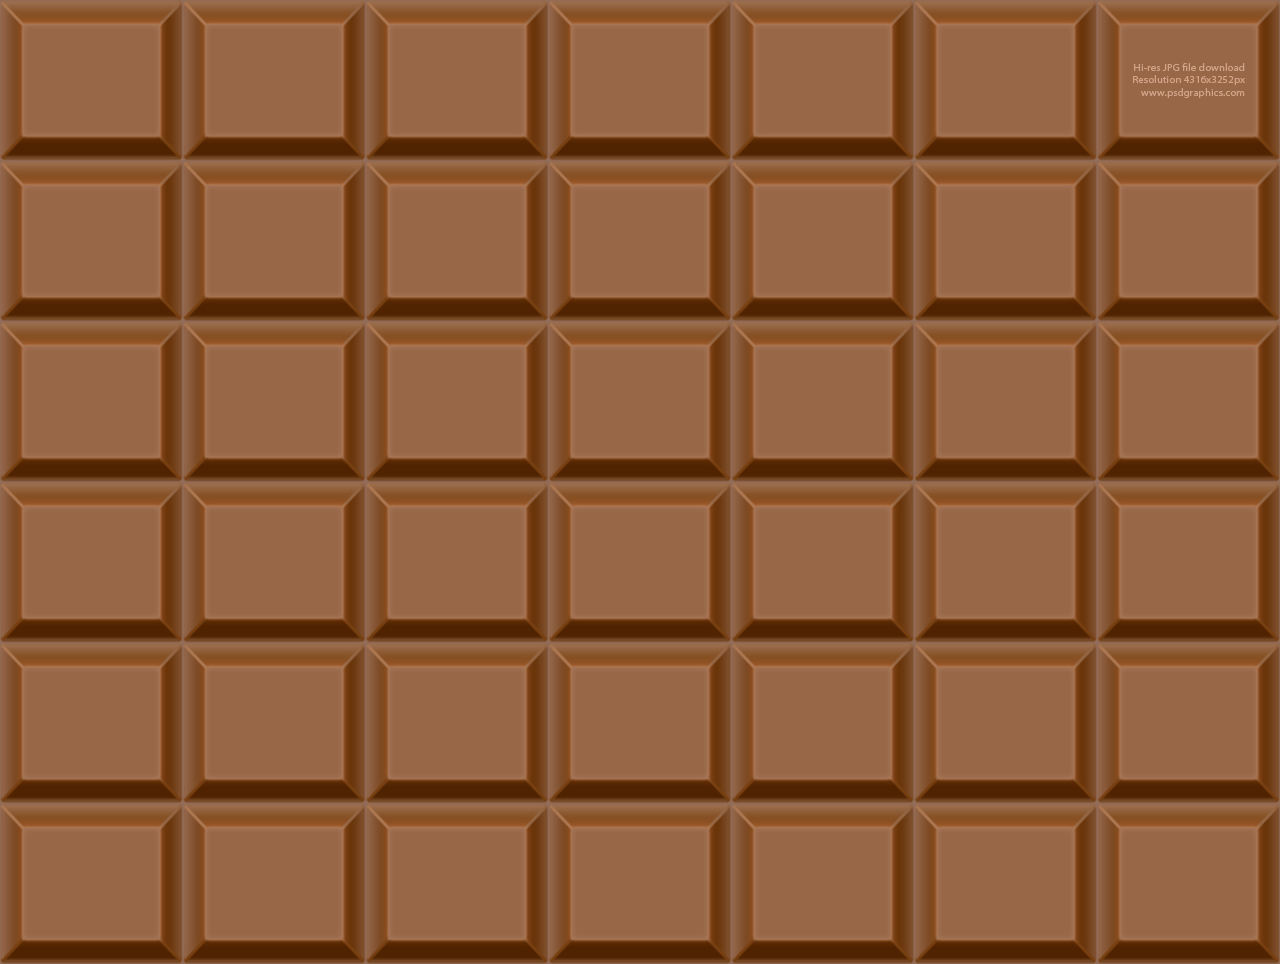 tile chocolateа, texture, download photo, background, chocolate bar texture